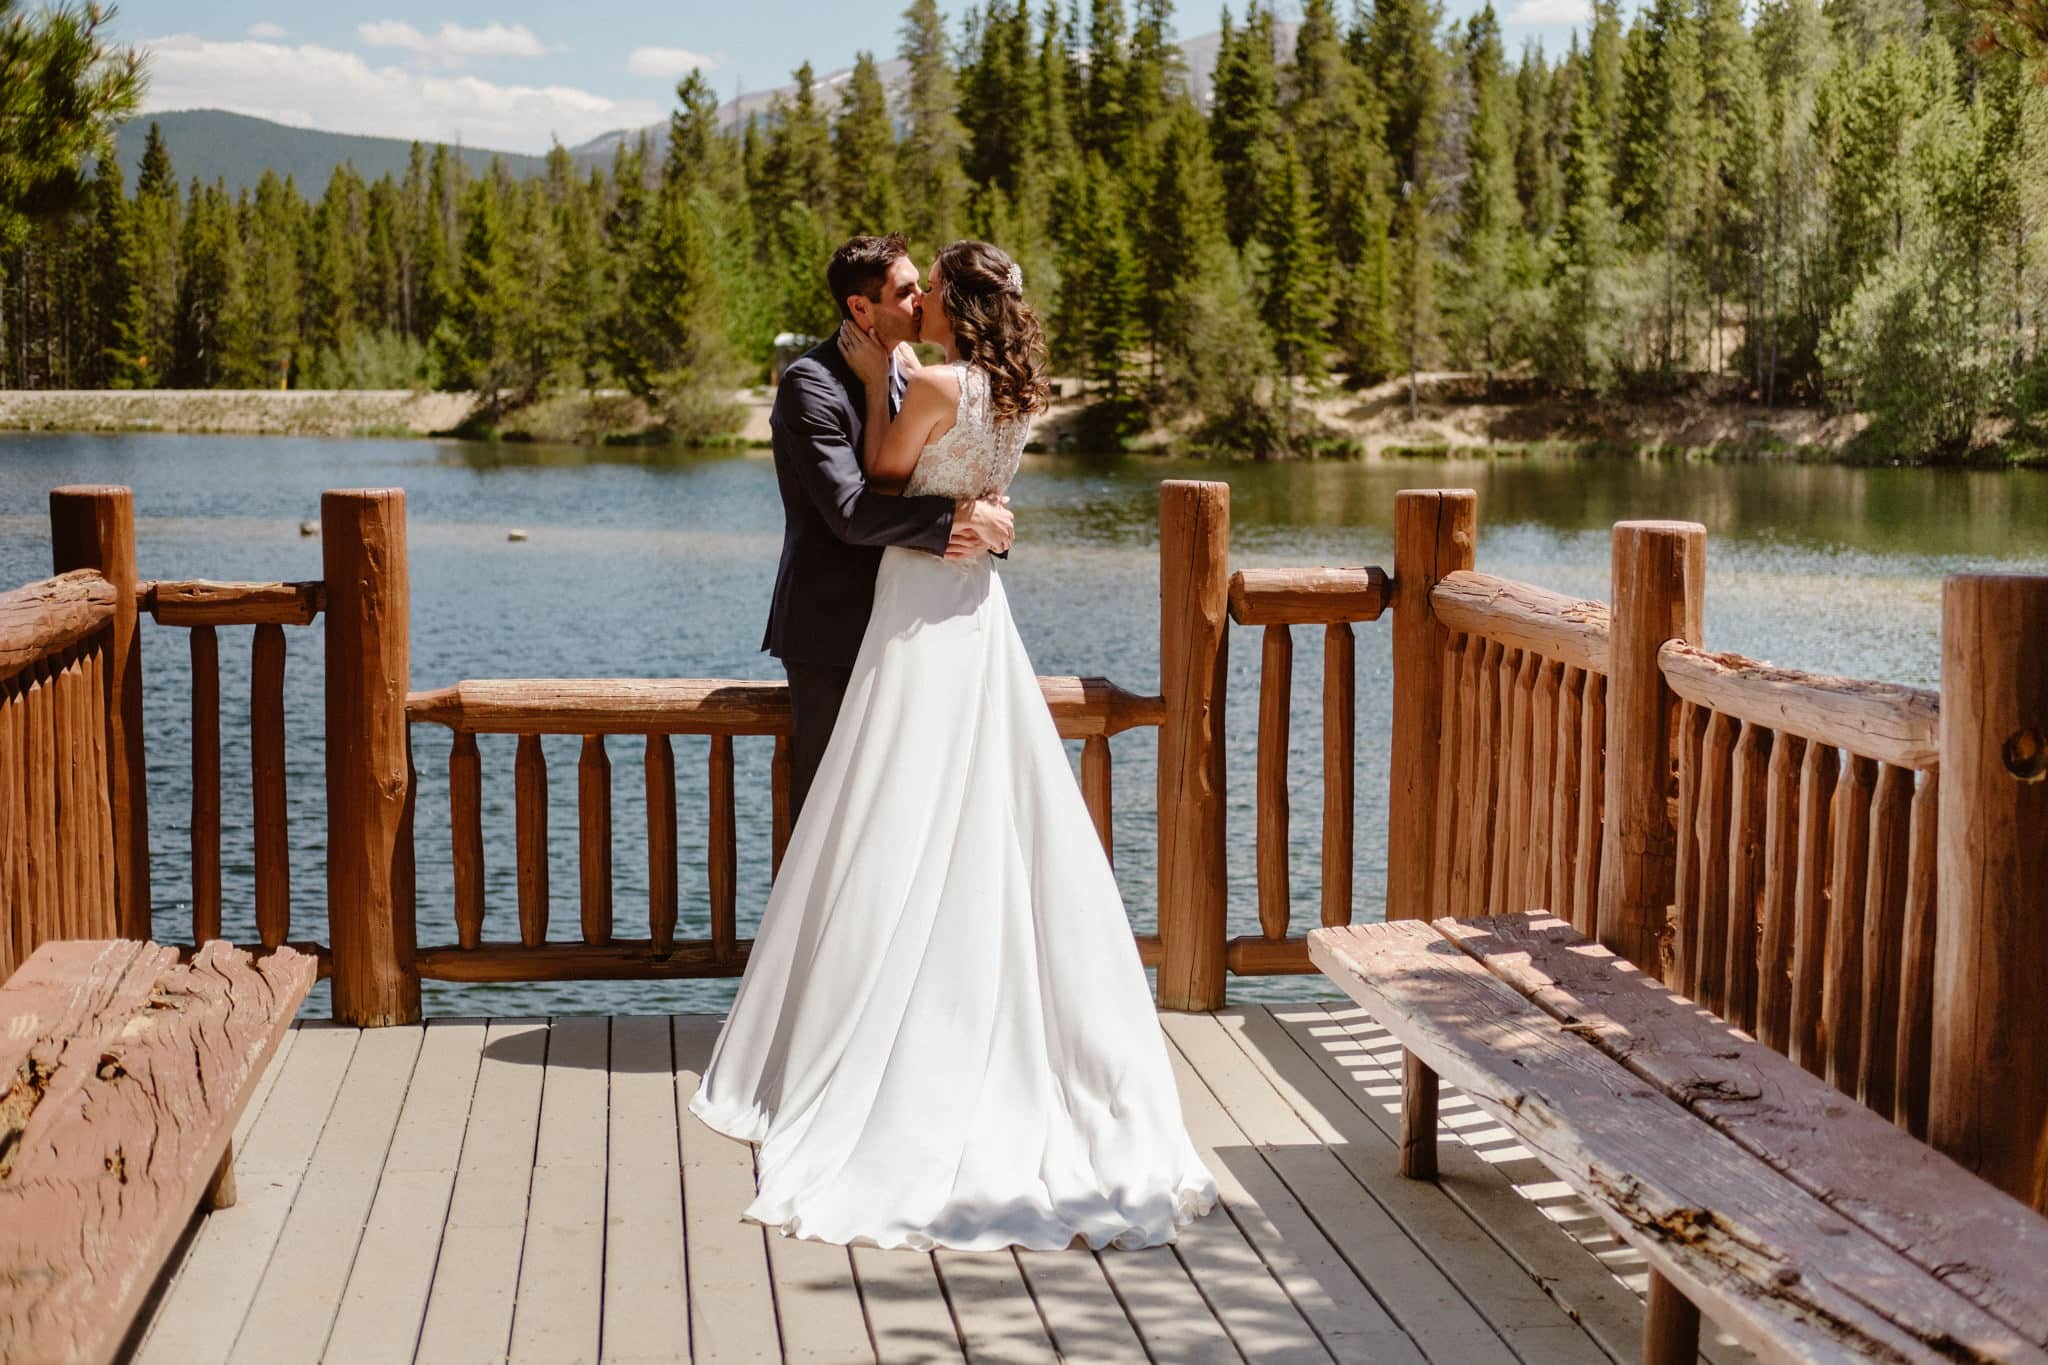 Bride and groom first look at Sawmill Reservoir in Breckenridge, Colorado wedding photographer